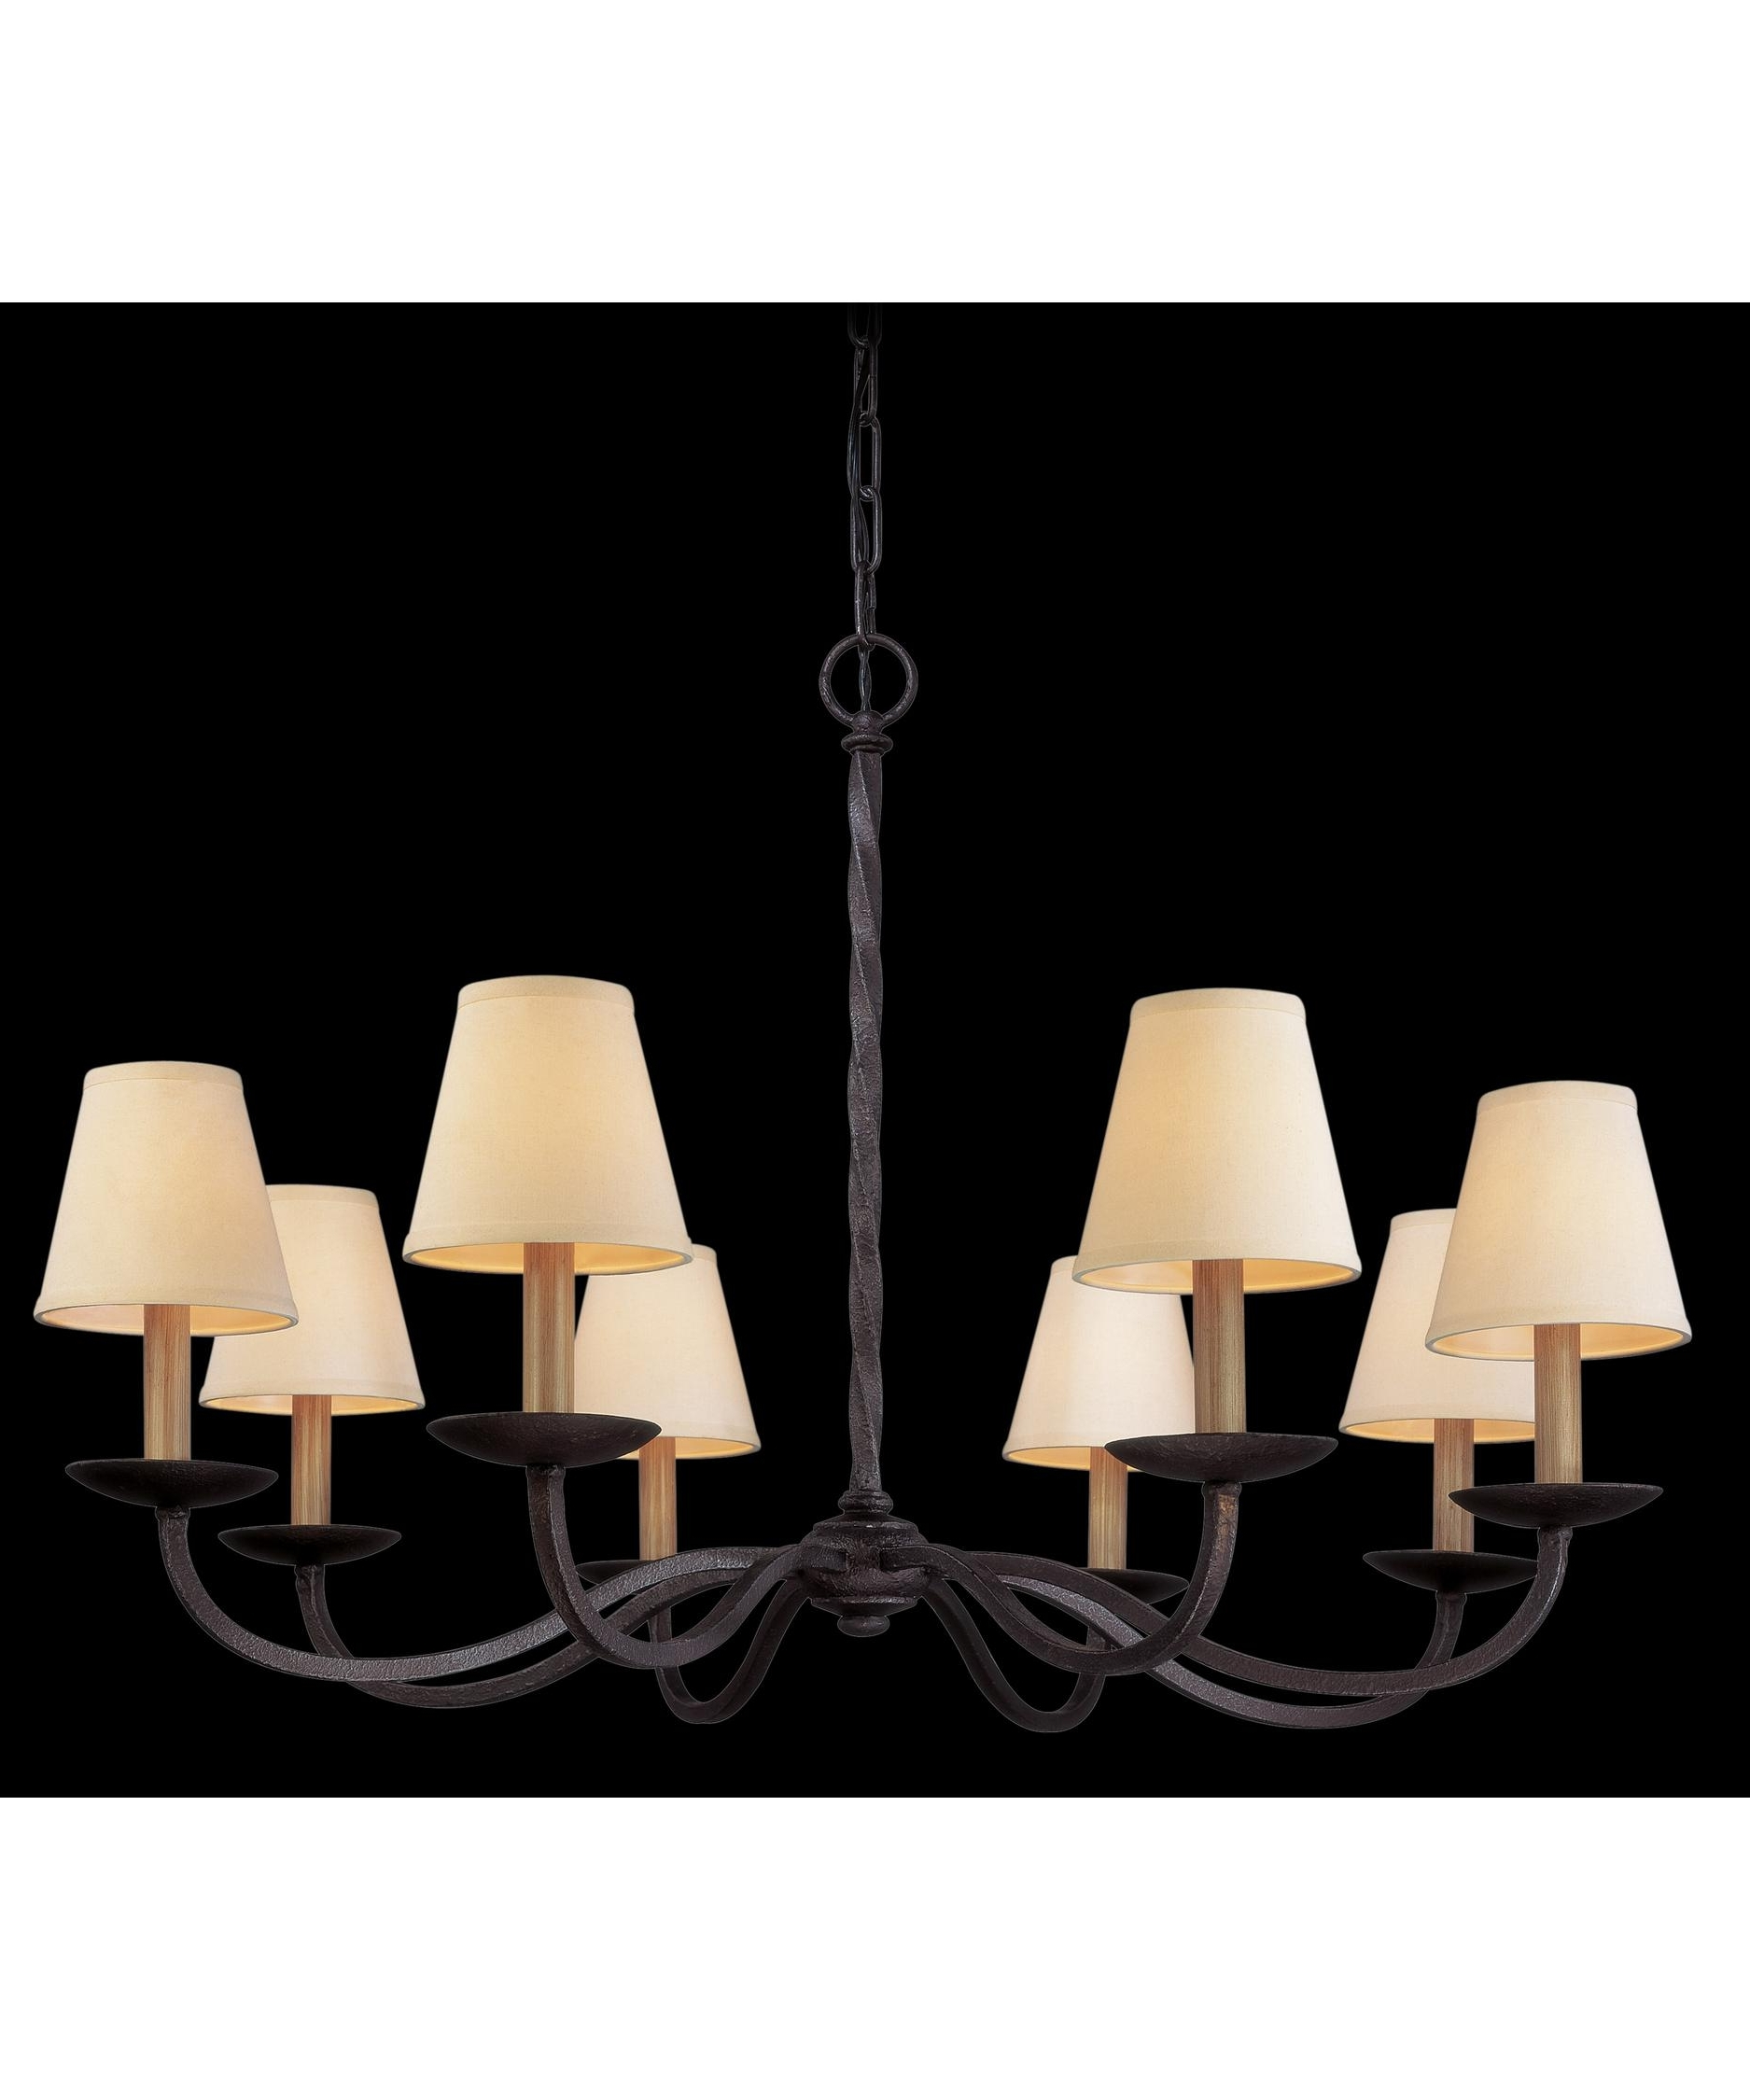 Most Recent Troy Lighting F2668 Alexander 38 Inch Wide 8 Light Chandelier With Linen Chandeliers (View 9 of 15)